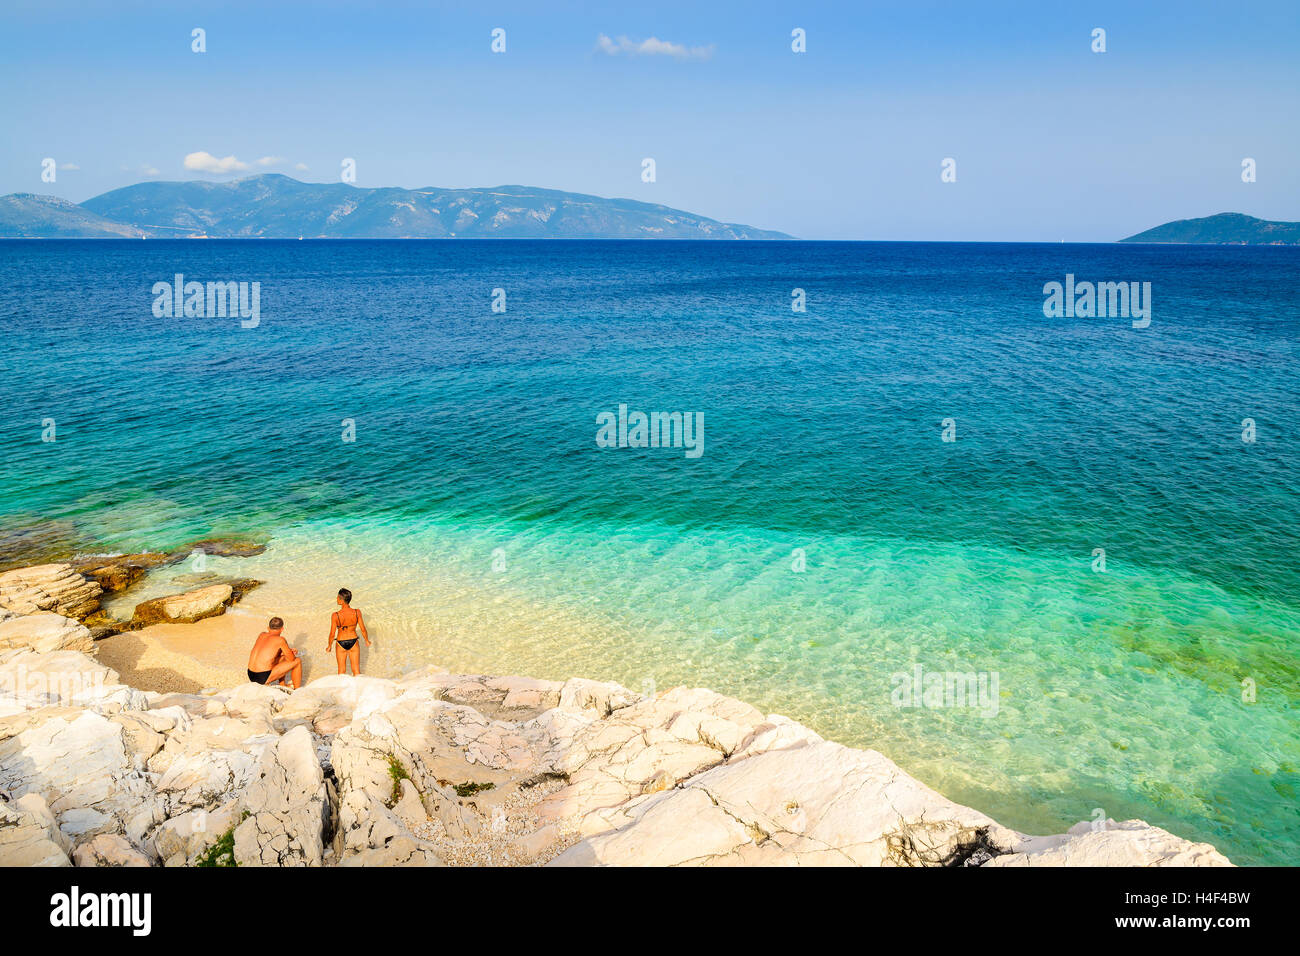 Unidentified man and woman relaxing on beautiful beach with crystal clear water on Kefalonia island, Greece - Stock Image